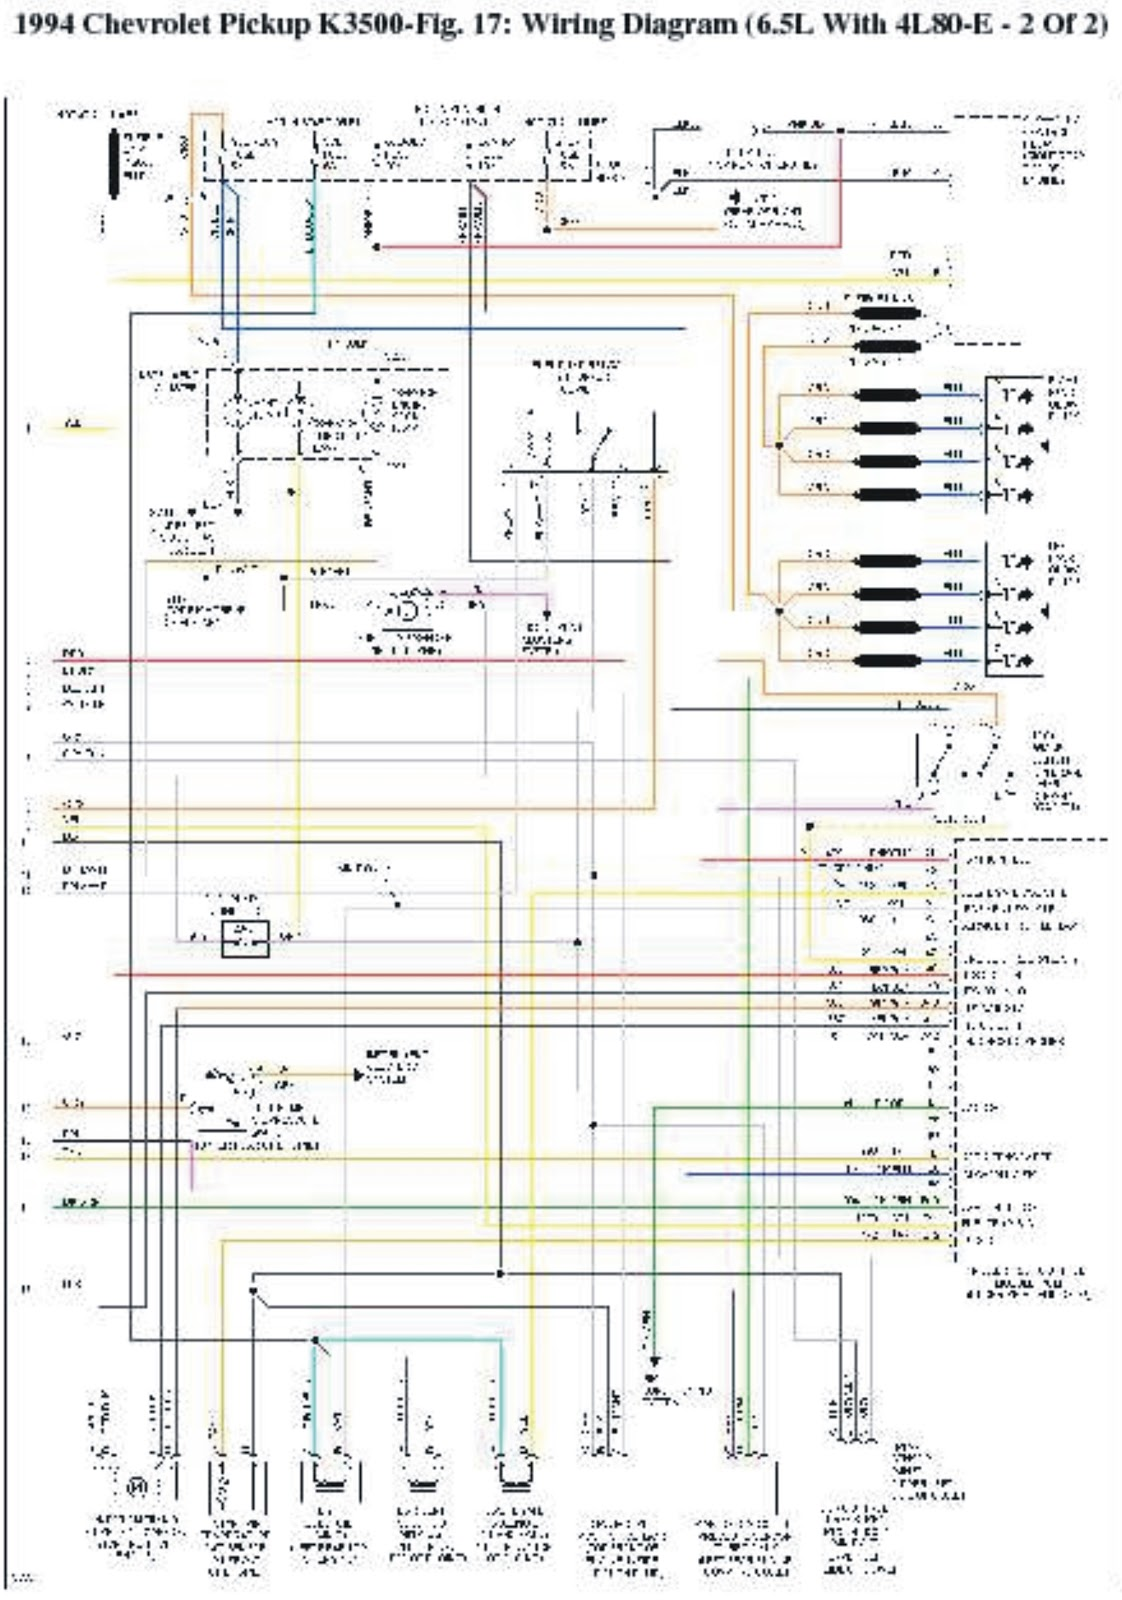 1994 chevrolet pick-up k3500 wiring diagrams | wiring ... 1998 chevy 3500 van transmission wiring diagram 1998 chevy astro van ac wiring diagram #1